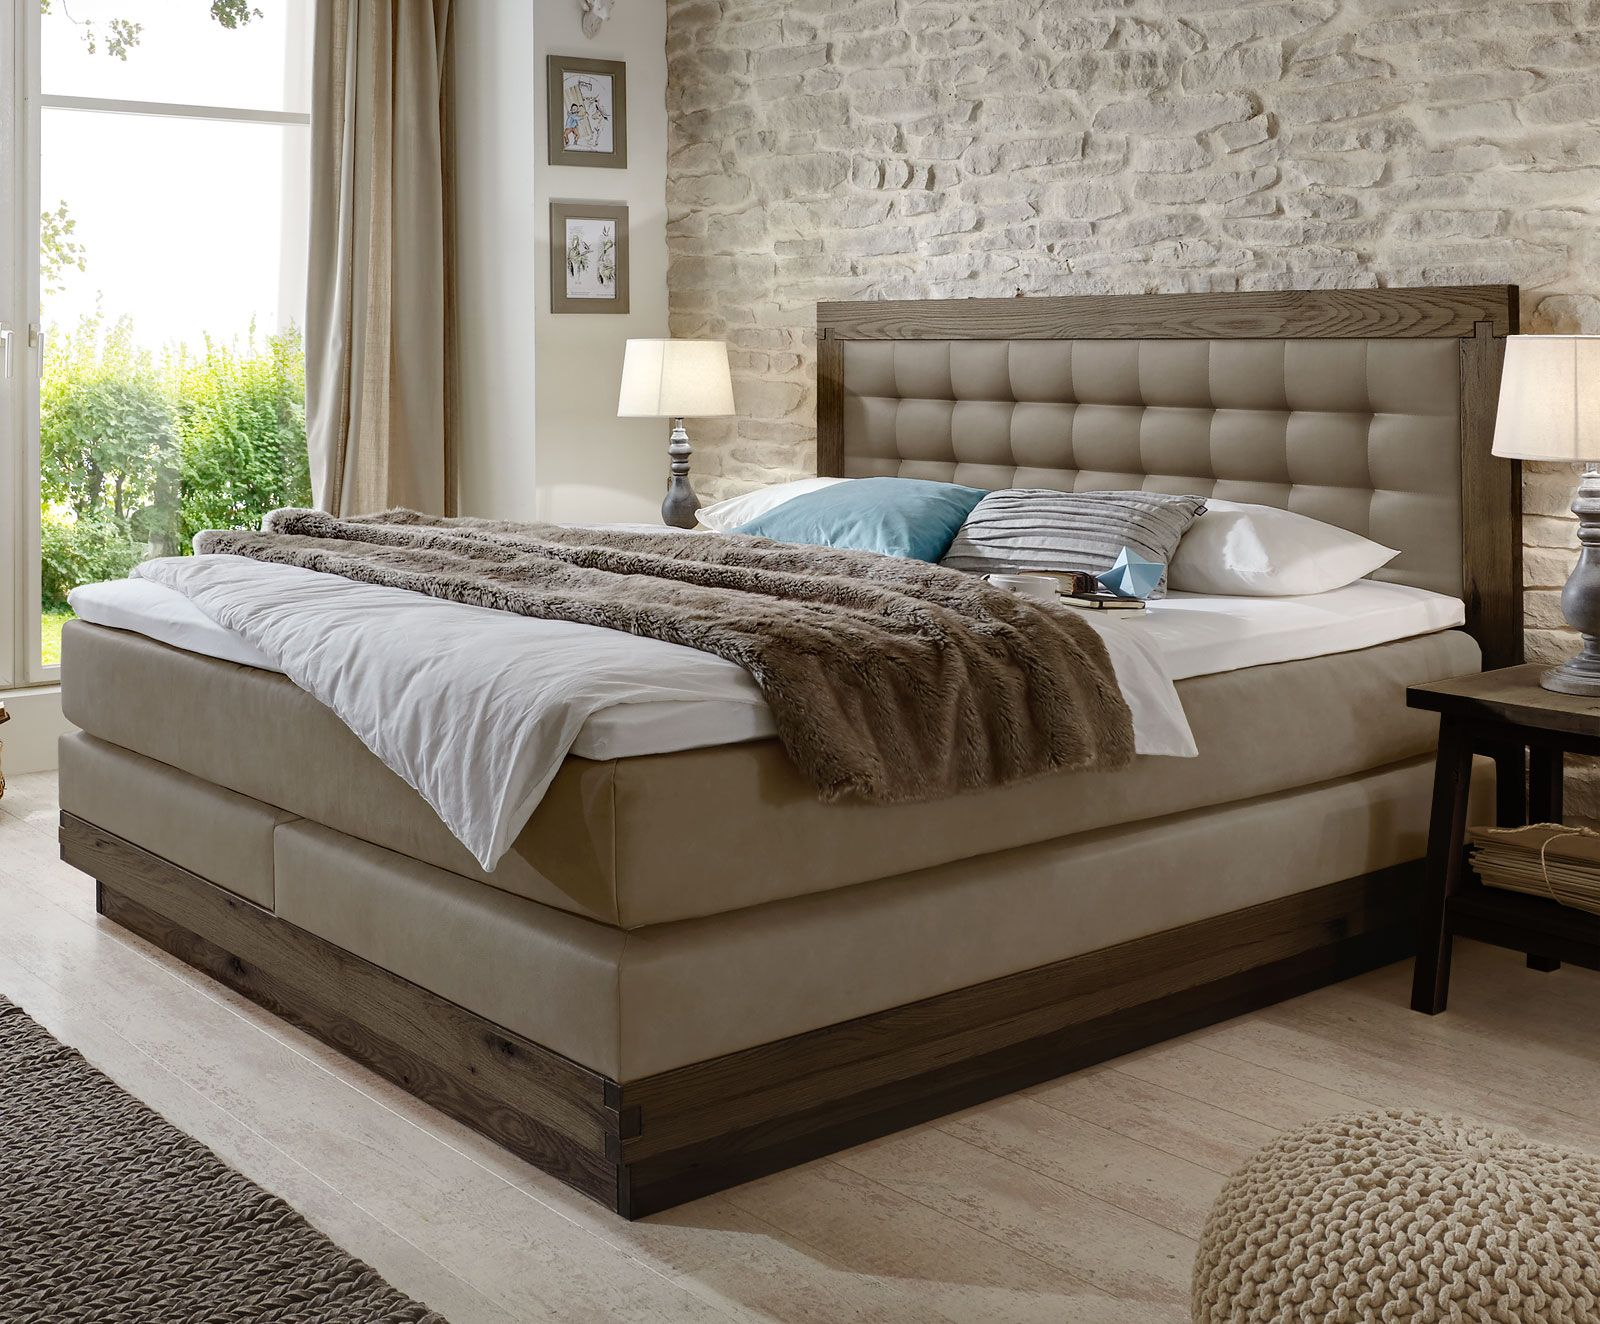 Boxspringbett Your Home Boxspringbett Quotgalicia Quot Bed Room Bedrooms And Room